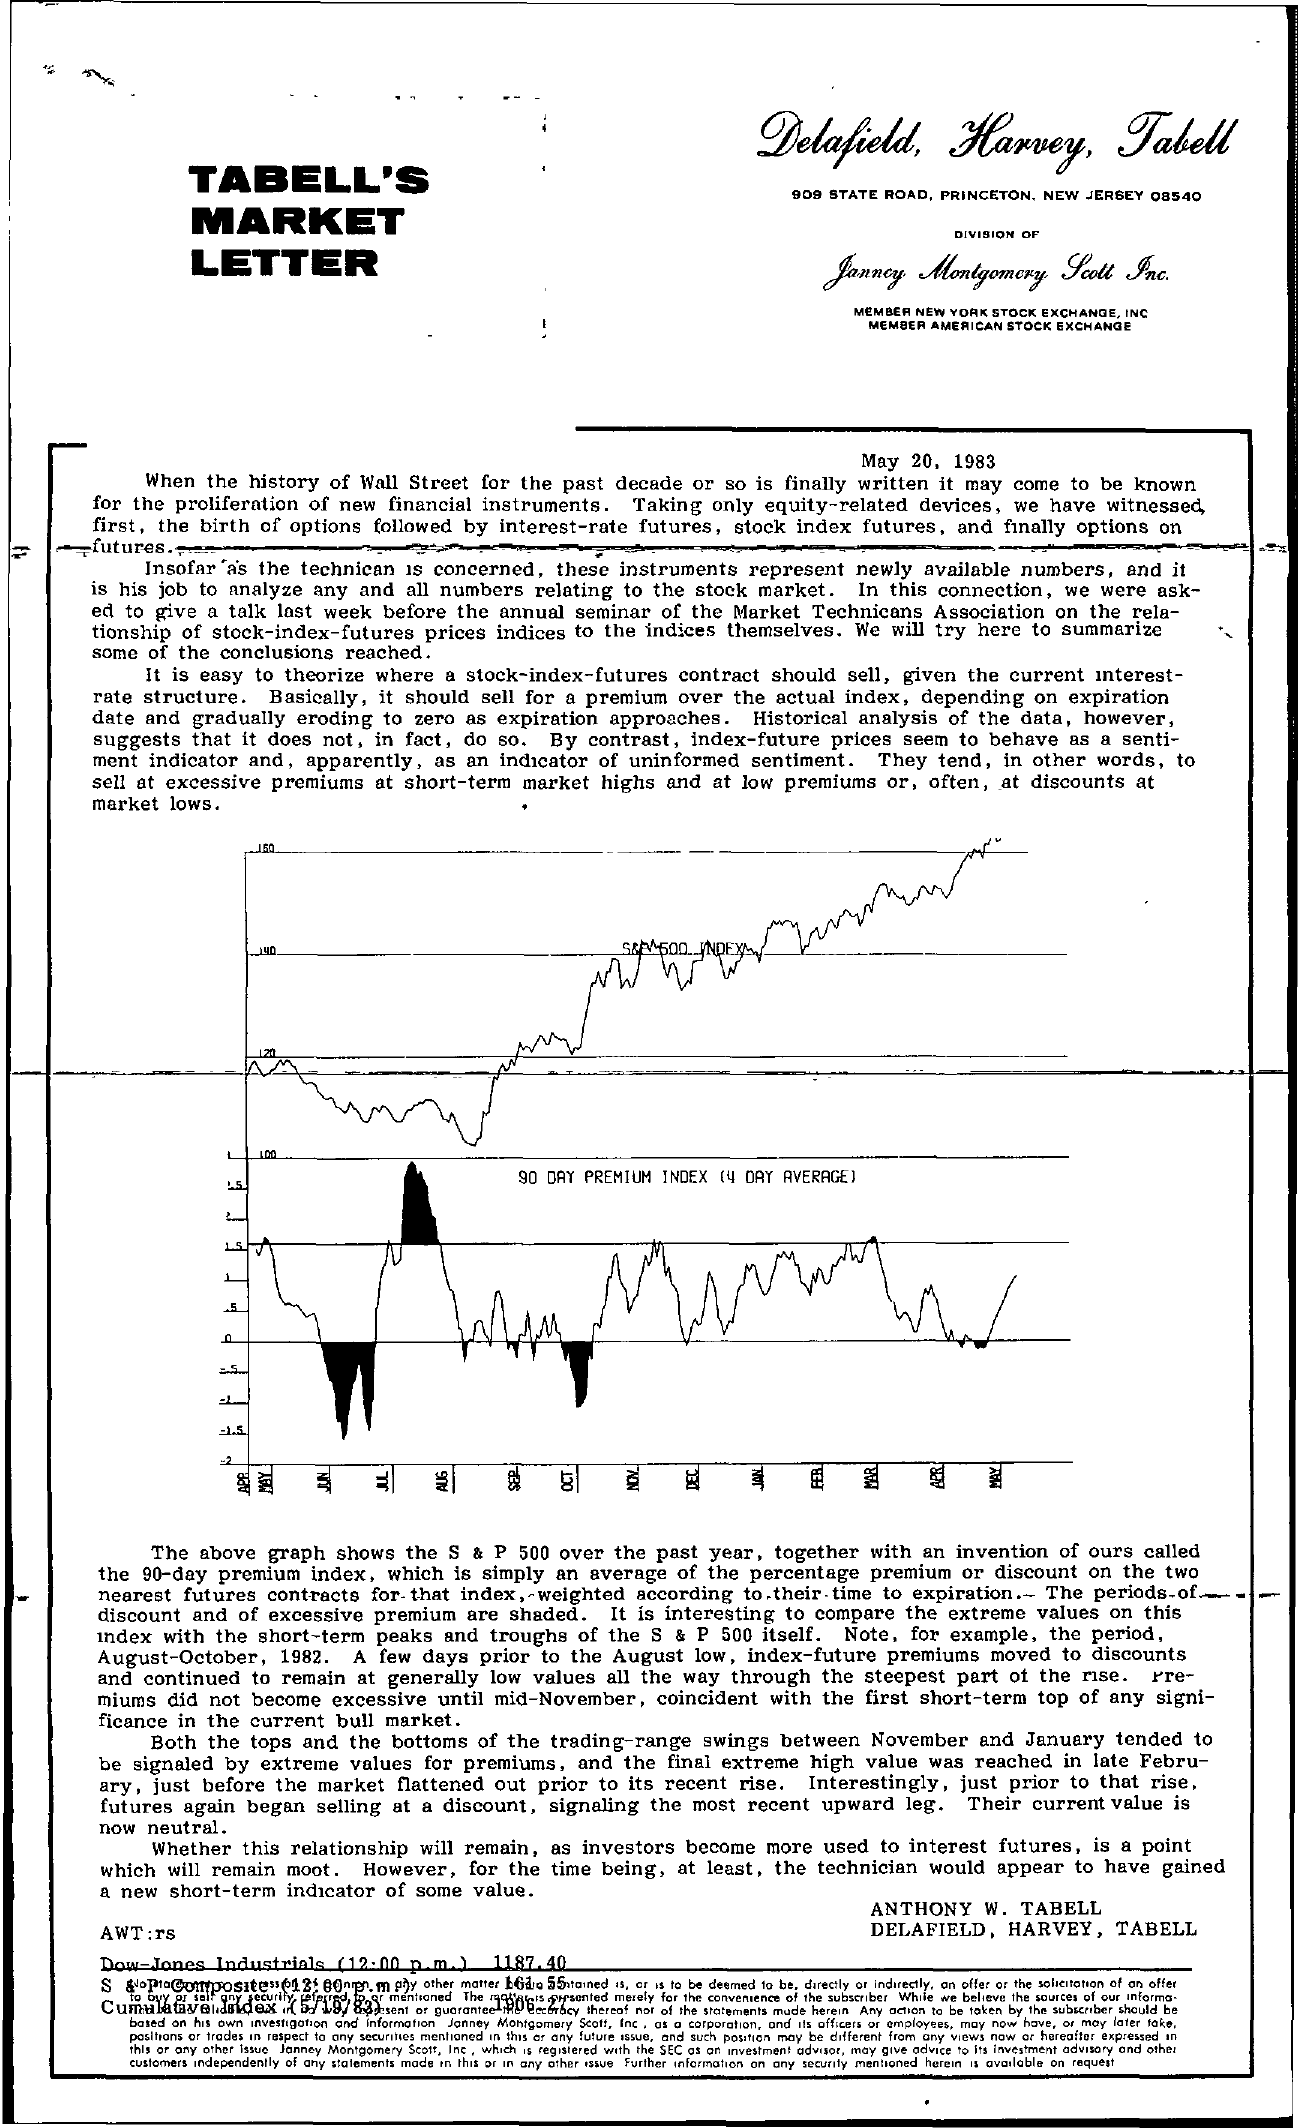 Tabell's Market Letter - May 20, 1983